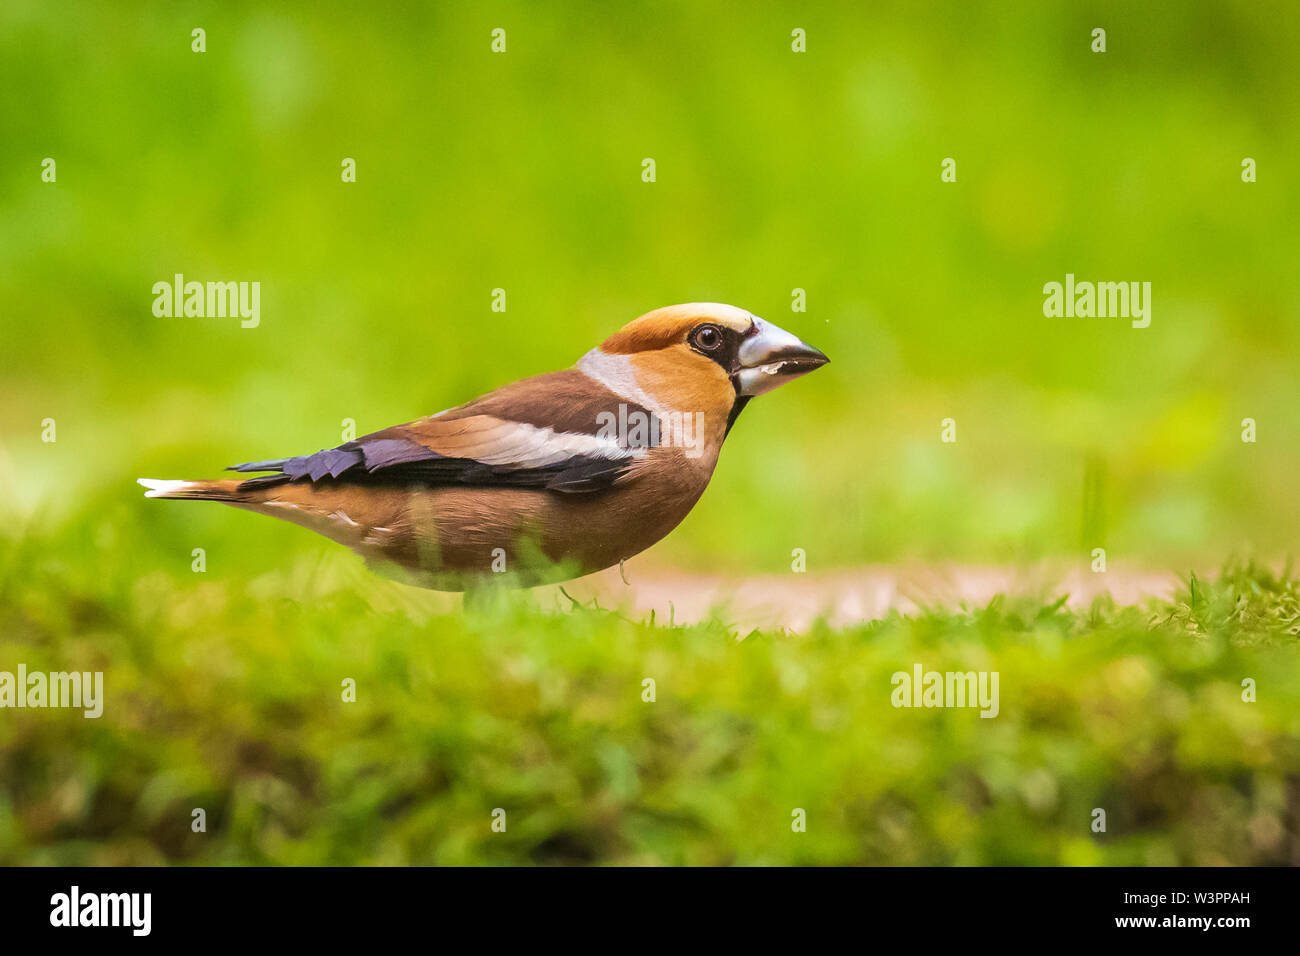 Closeup of a male hawfinch Coccothraustes coccothraustes bird perched in a green grass field. Selective focus and natural sunlight - Stock Image